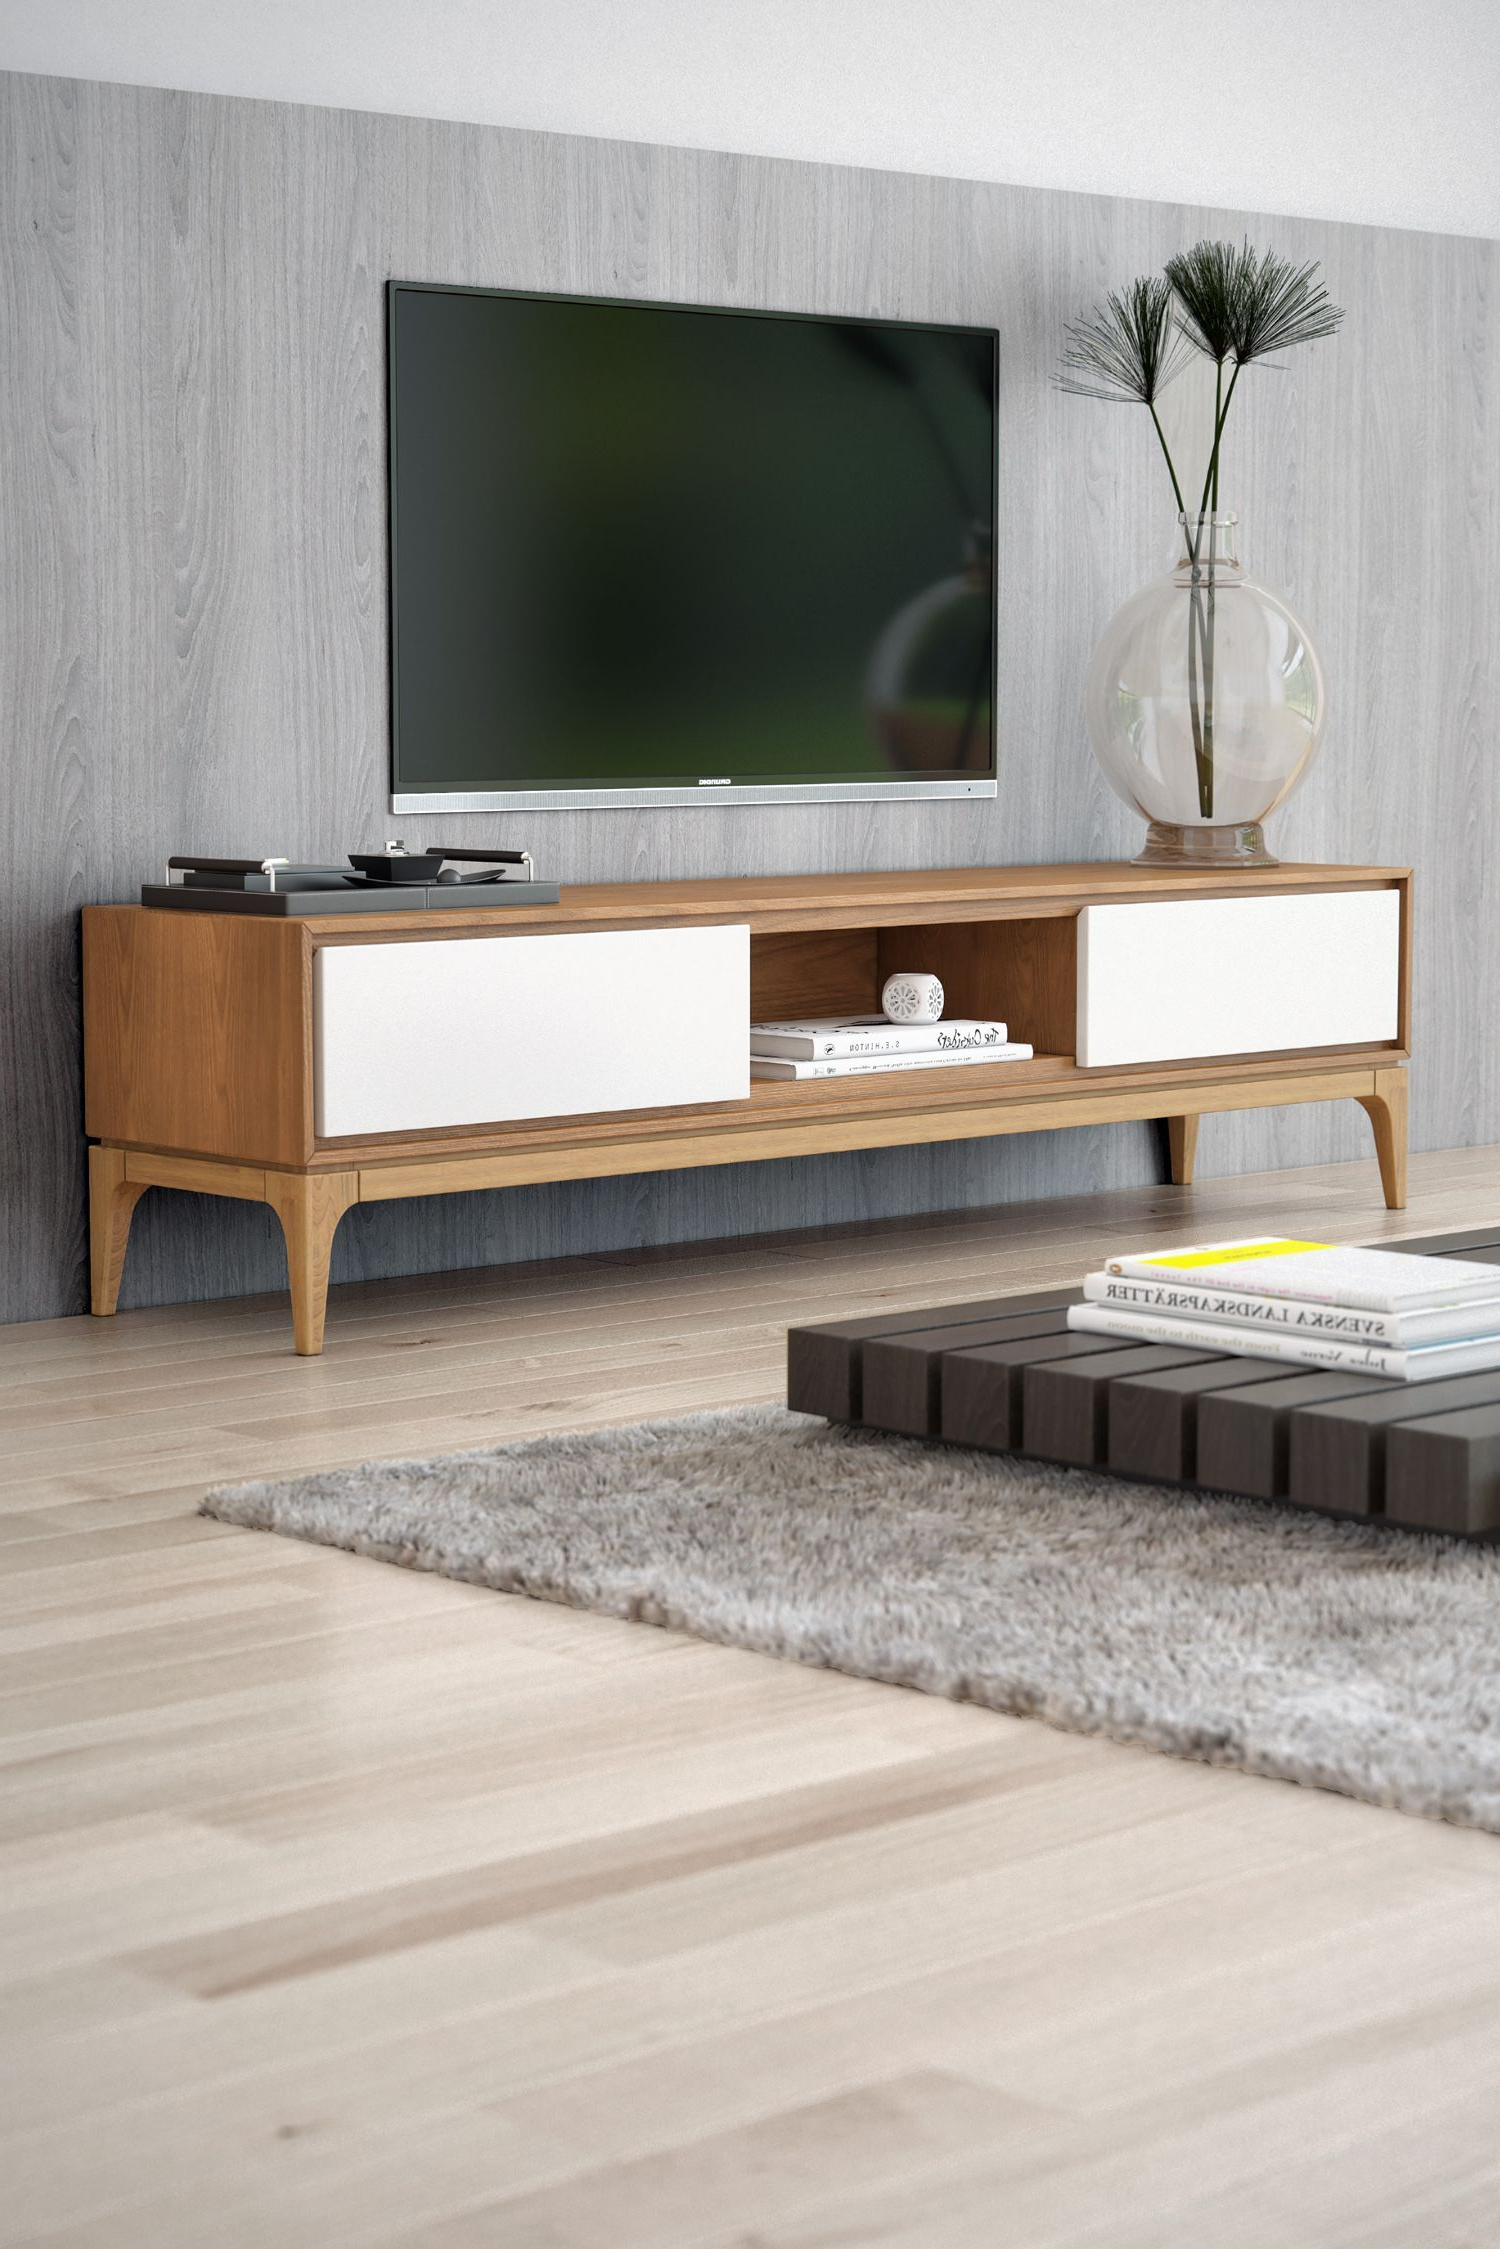 Rove Concepts Rove Concepts Mid Century Furniture Within Modern Tv Stands (Gallery 9 of 20)